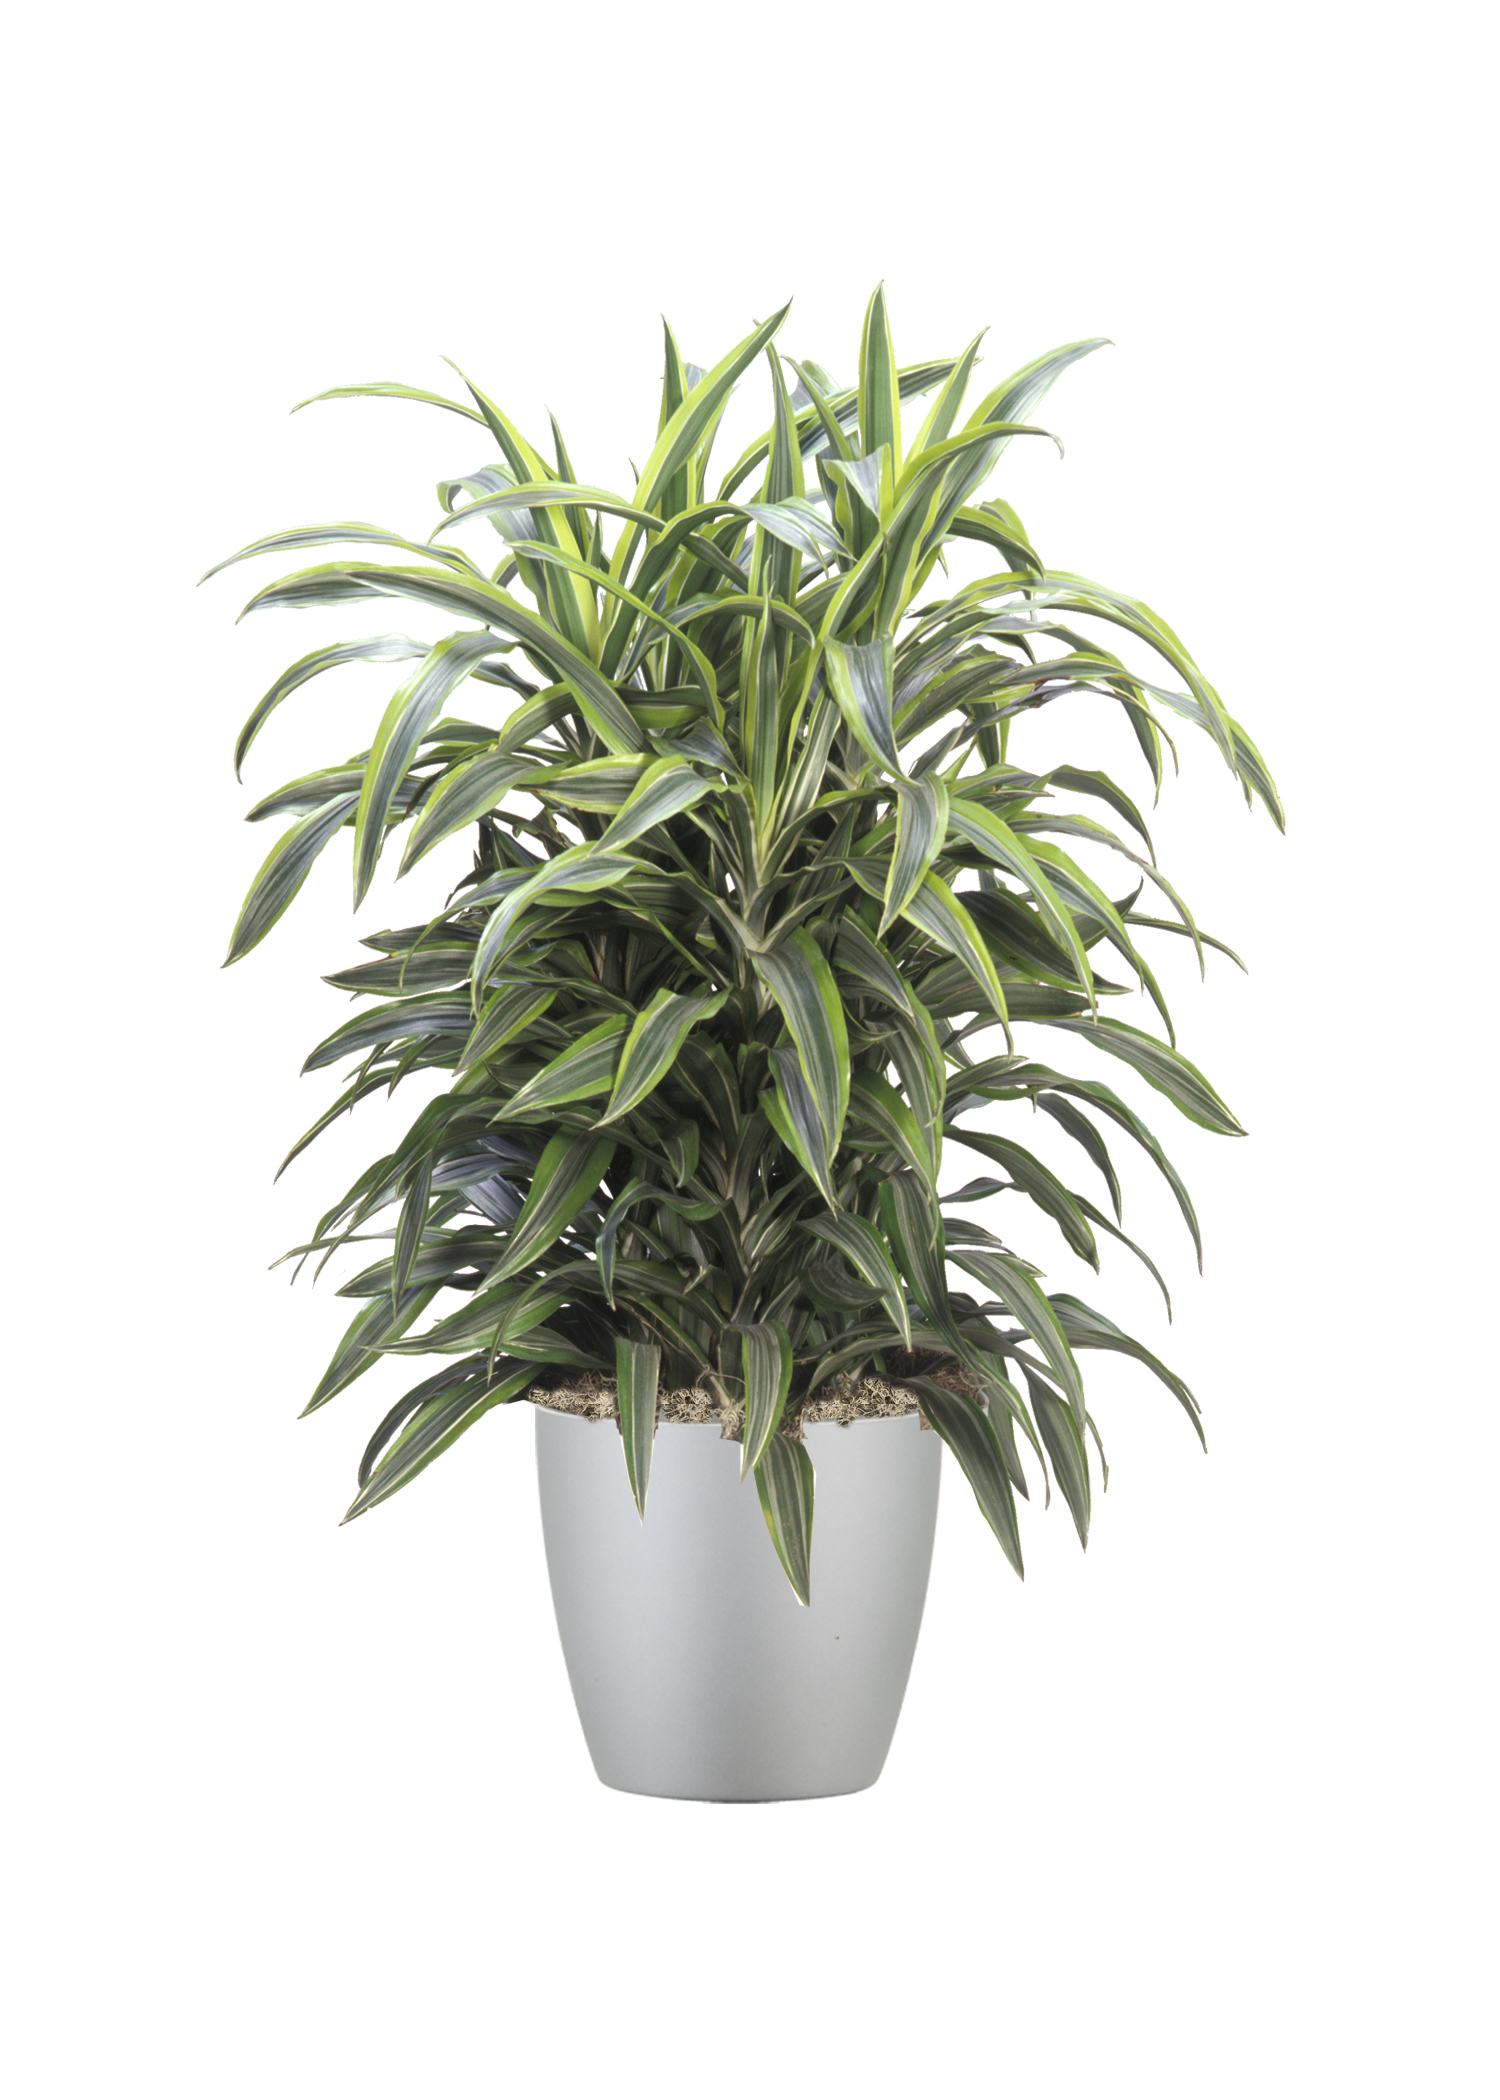 Dracaena Lemon LIme Bush